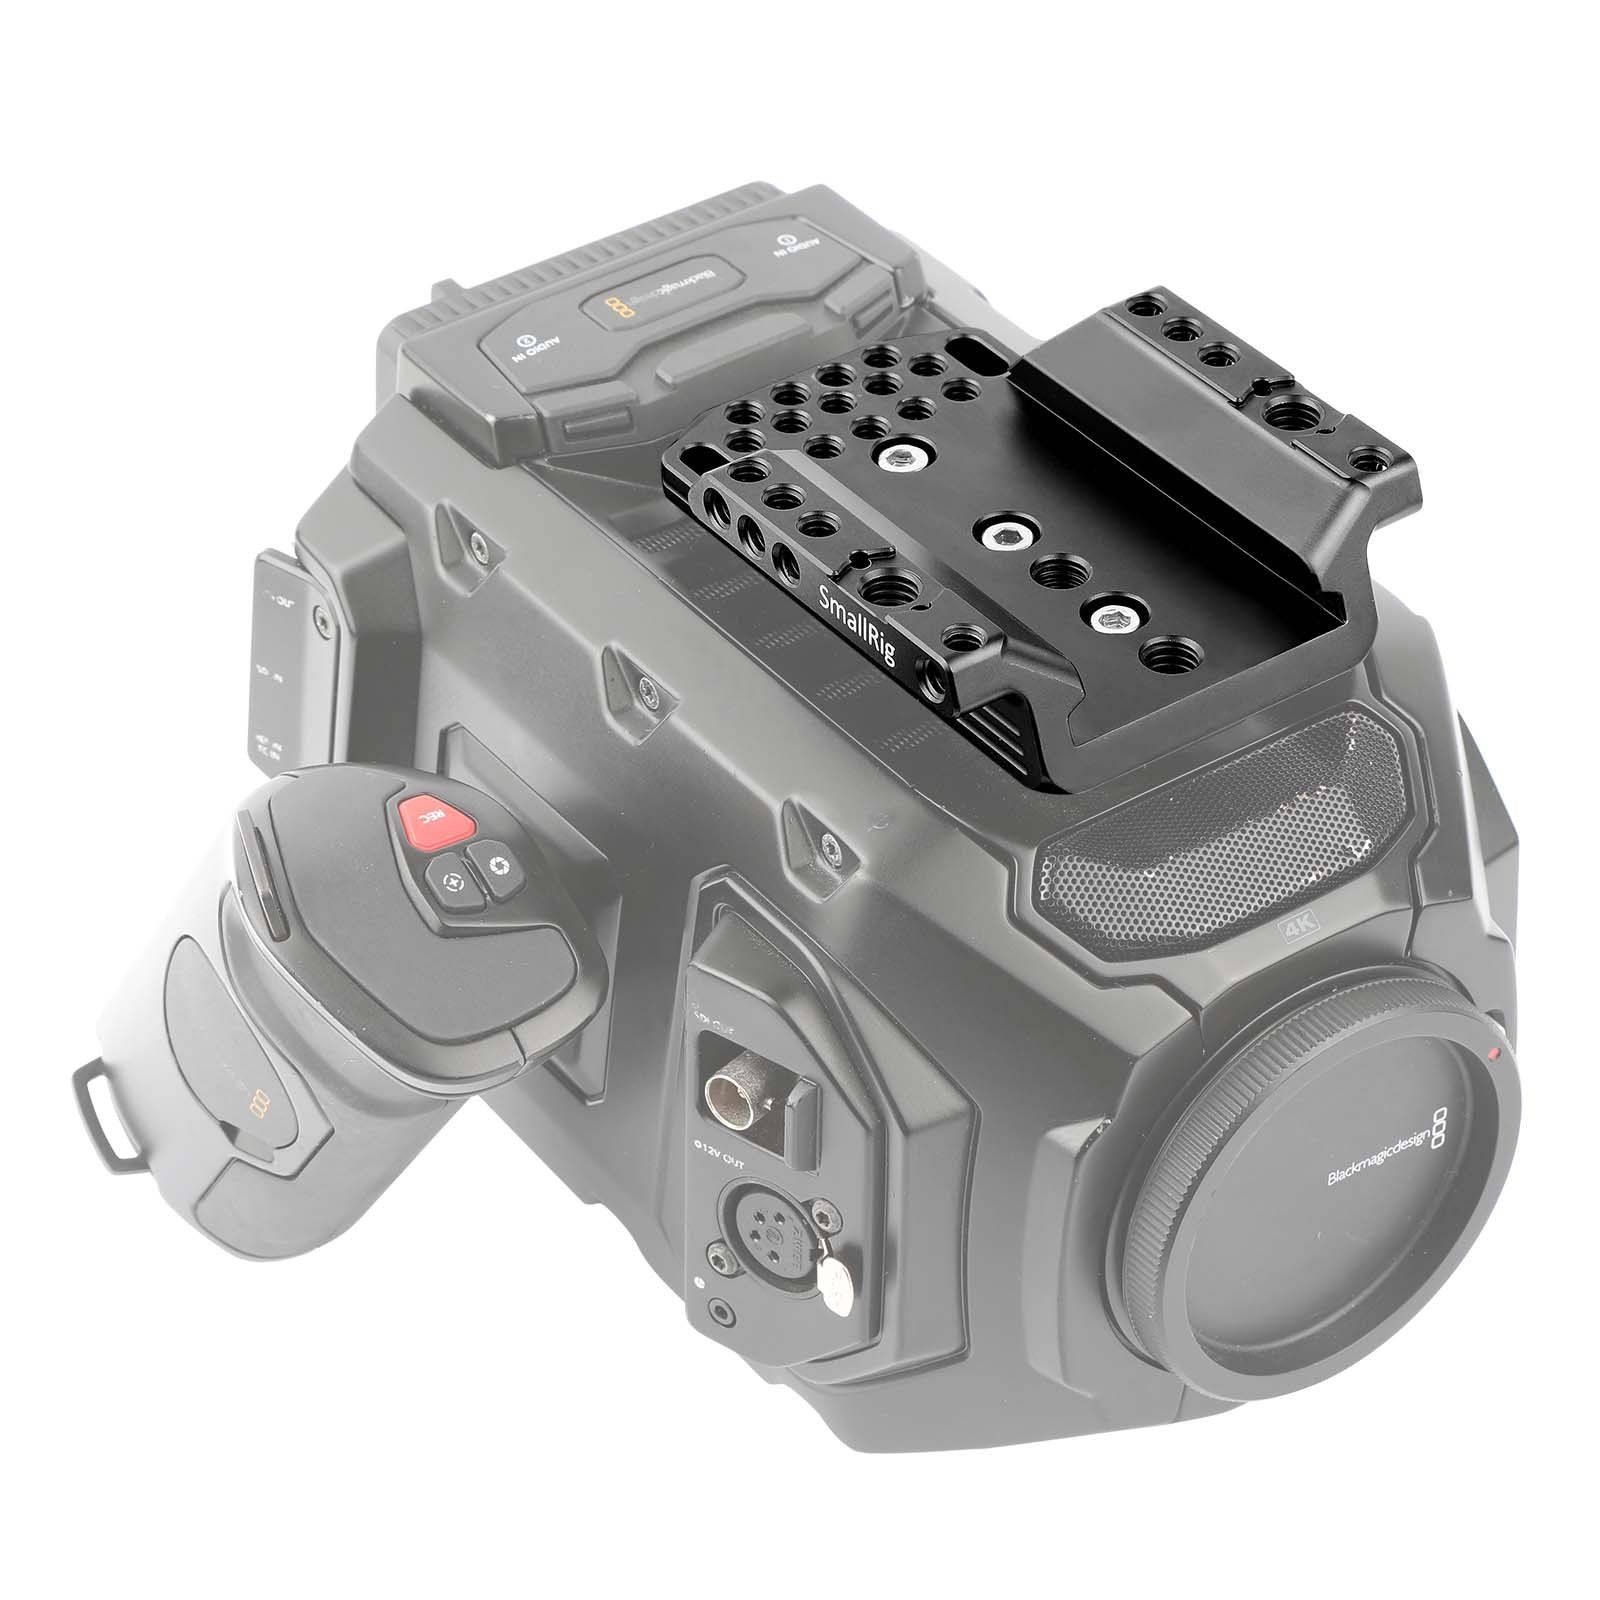 """SMALLRIG Top Plate Cheese Plate for Blackmagic URSA Mini/Mini Pro Original EVF Viewfinder with 1/4"""" 3/8"""" Thread Locating Holes - 1958 by SMALLRIG (Image #5)"""